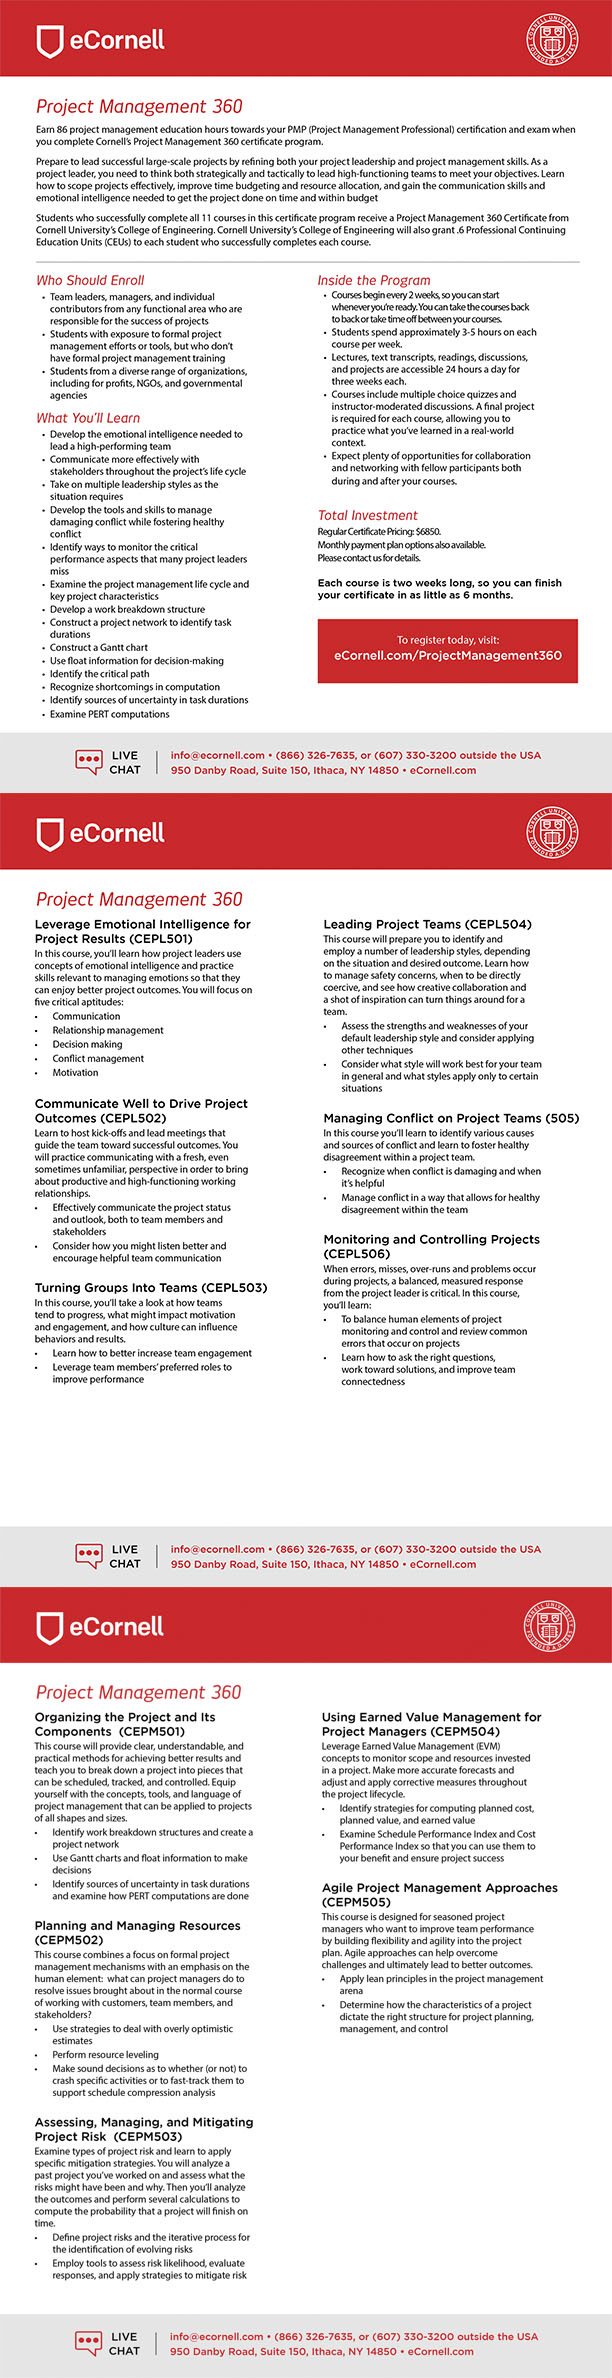 Project Management 360 Flyer